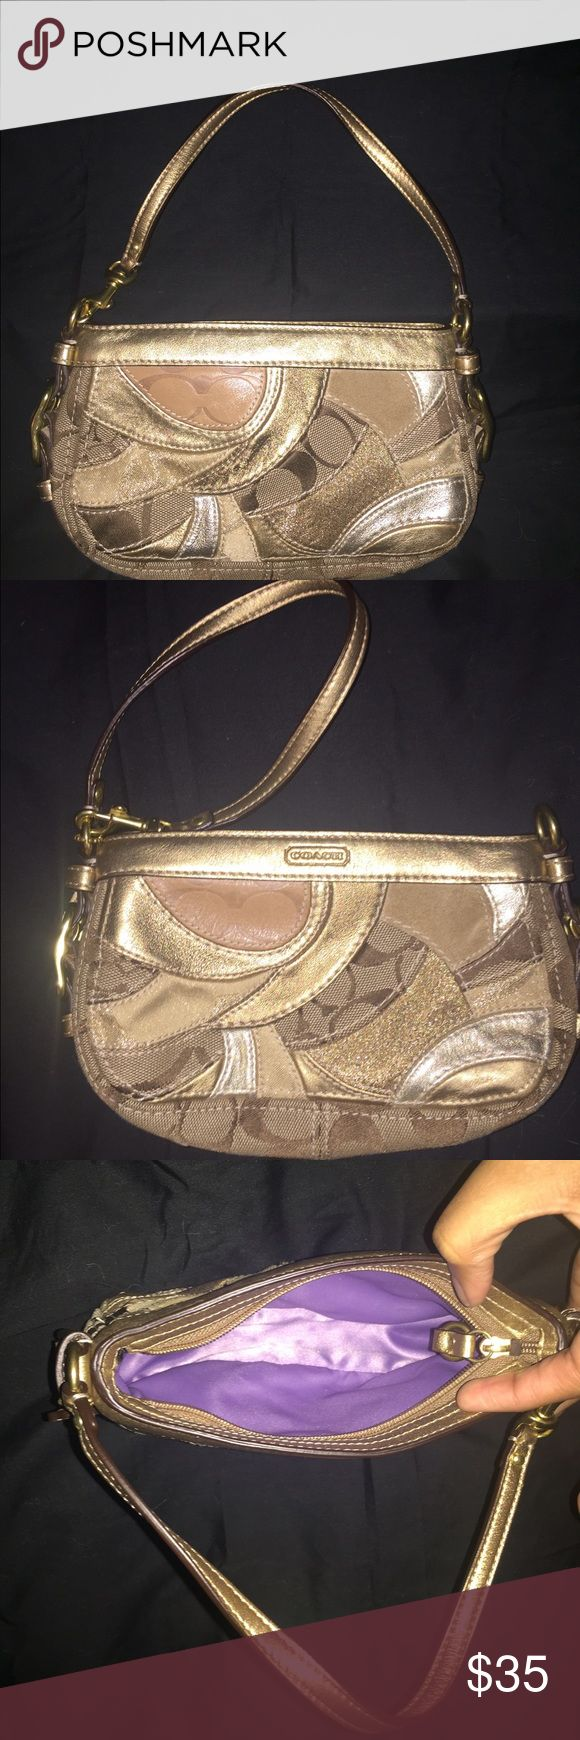 Coach Wristlet 8 inch Coach wristlet.. Can be used as a small purse, clutch, or wristlet. Coach Bags Clutches & Wristlets